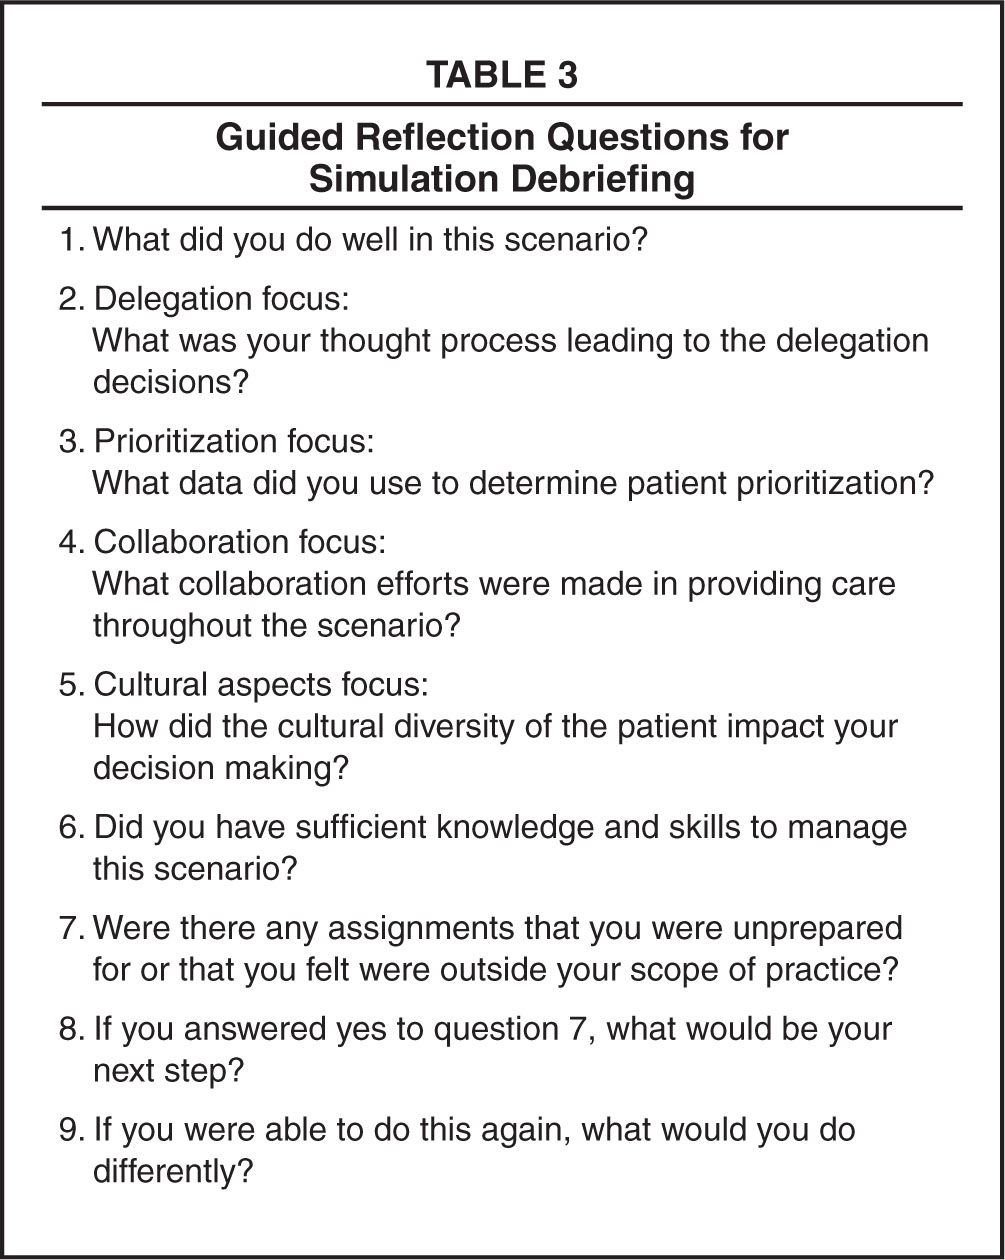 Guided Reflection Questions for Simulation Debriefing